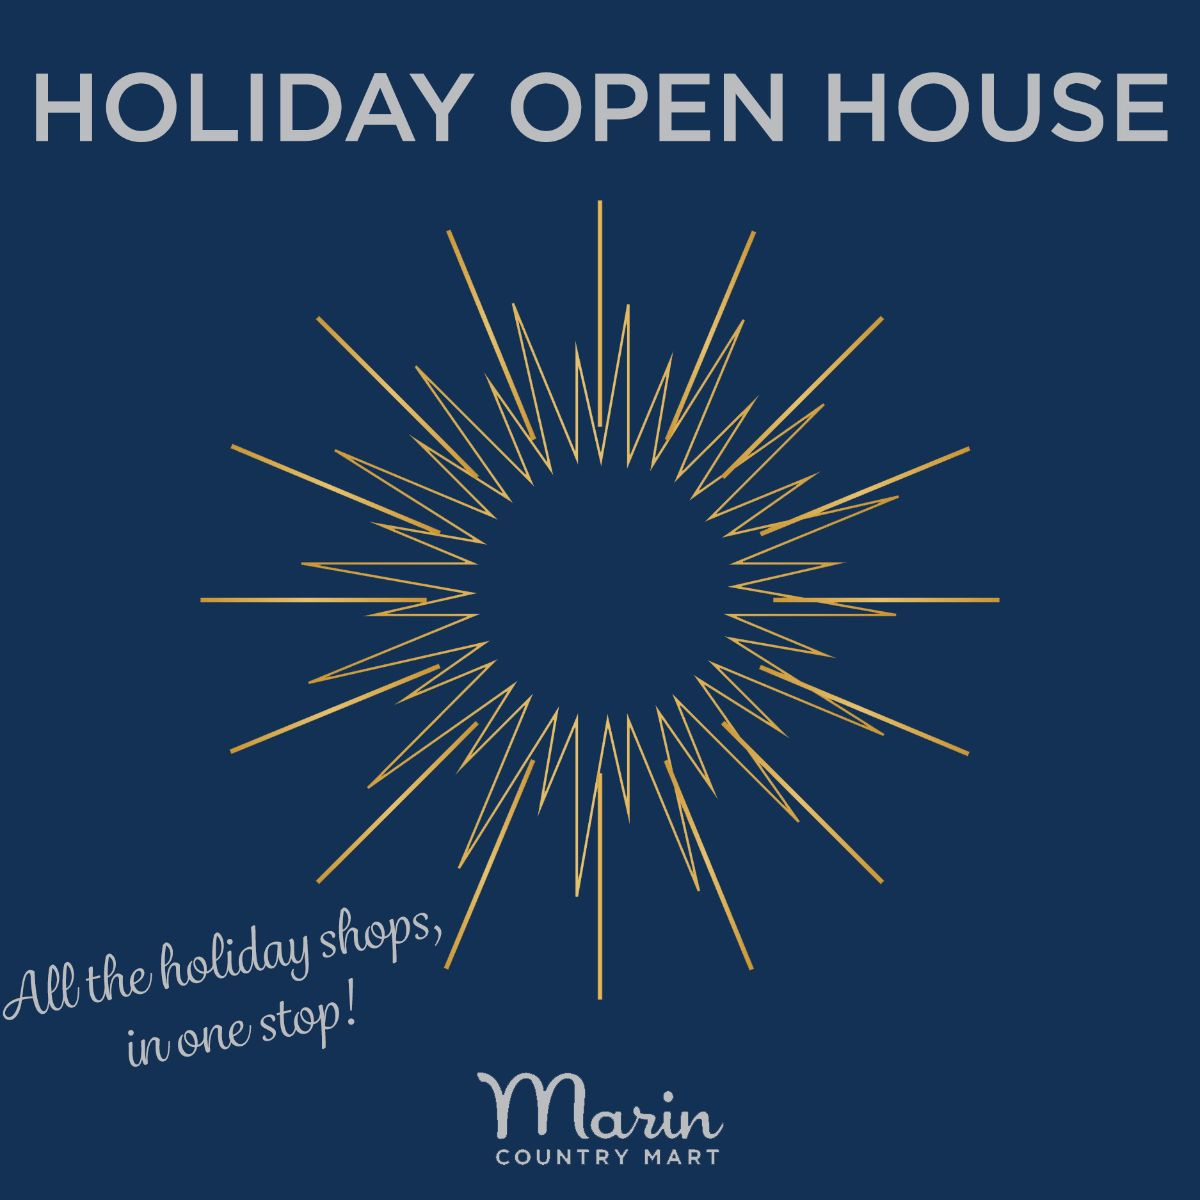 Holiday Open House - DECEMBER 8: Meet us at the Mart for a Holiday Open House!! Many of our shops will be hosting workshops, happy hours, & more - highlight is the Build a Board Demo with Kiri Fisher of Fisher's Cheese & Wine. Spirited Marin Strolling market with Mitten Cookie Decorating for kids, plus an Open House at the Mart starting at 4pm with crafts at Copperfield's and Poppy Marin!DECEMBER 13 - Join us 3-6pm for complimentary hot chocolate and candy cane swizzle sticks in front of Copperfield's, along with kids holiday crafts and holiday music!DECEMBER 14 - Punch and Judy perform at Poppy! Showtimes are 4pm and 6pm. We will also have gingerbread cookies for kids to decorate!